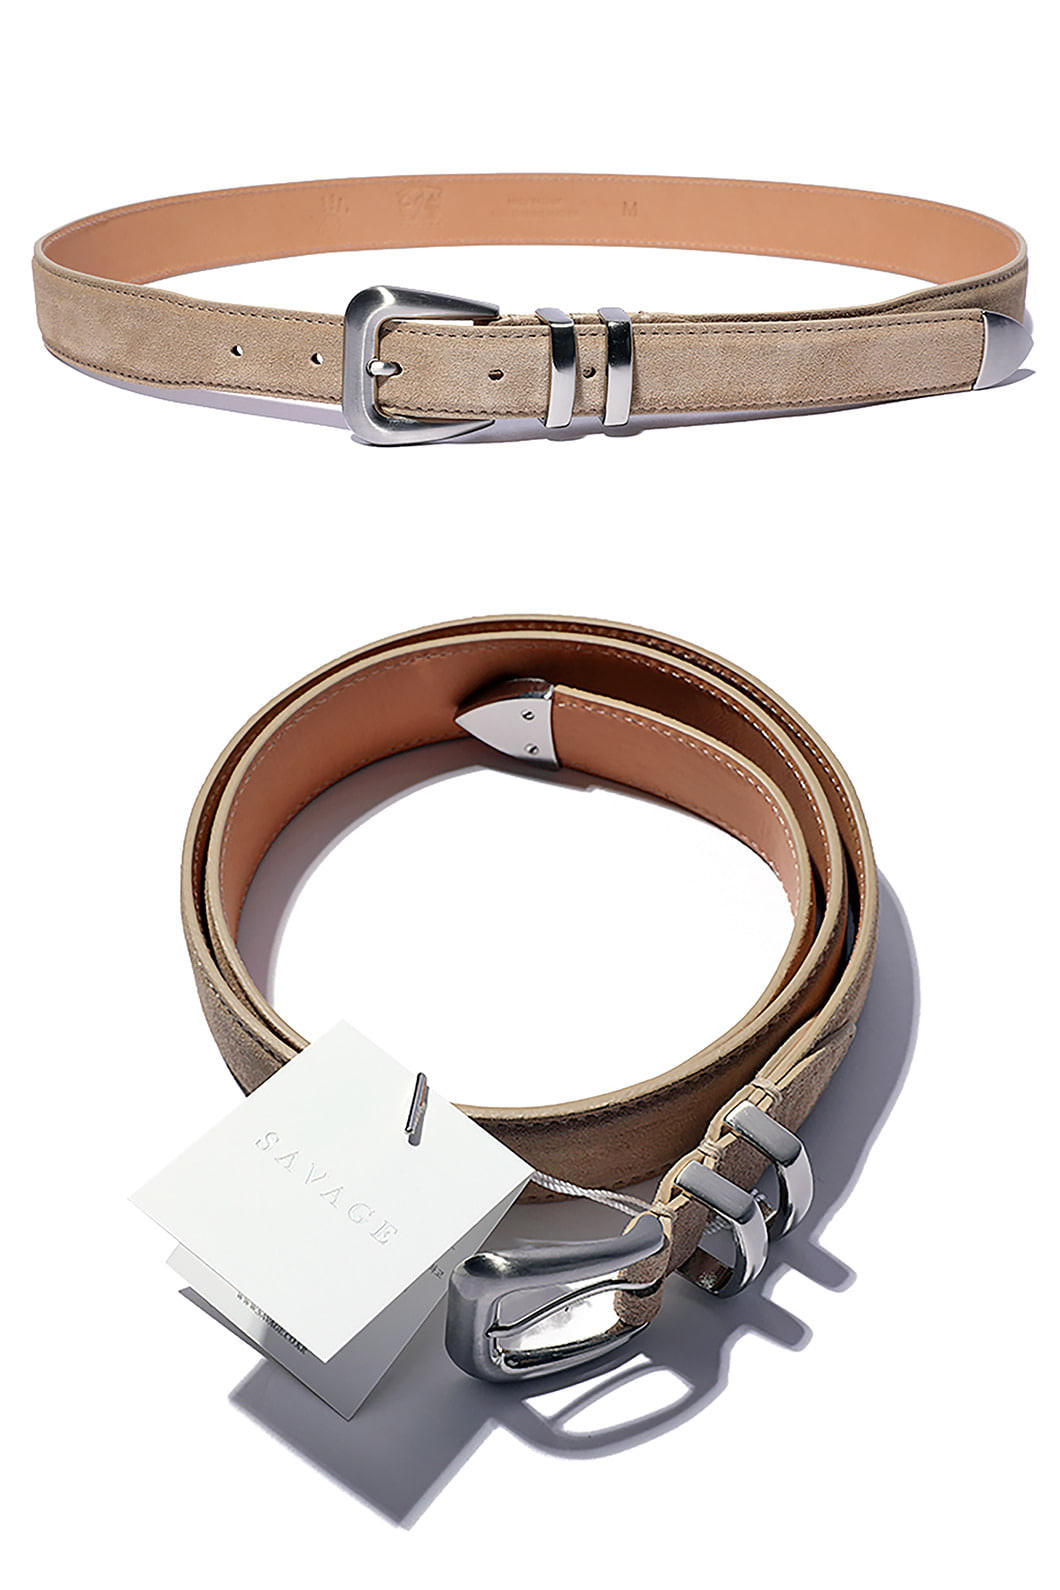 SAVAGE 110 SUEDE BELT-BEIGESPECIAL ORDER-HAND MADE